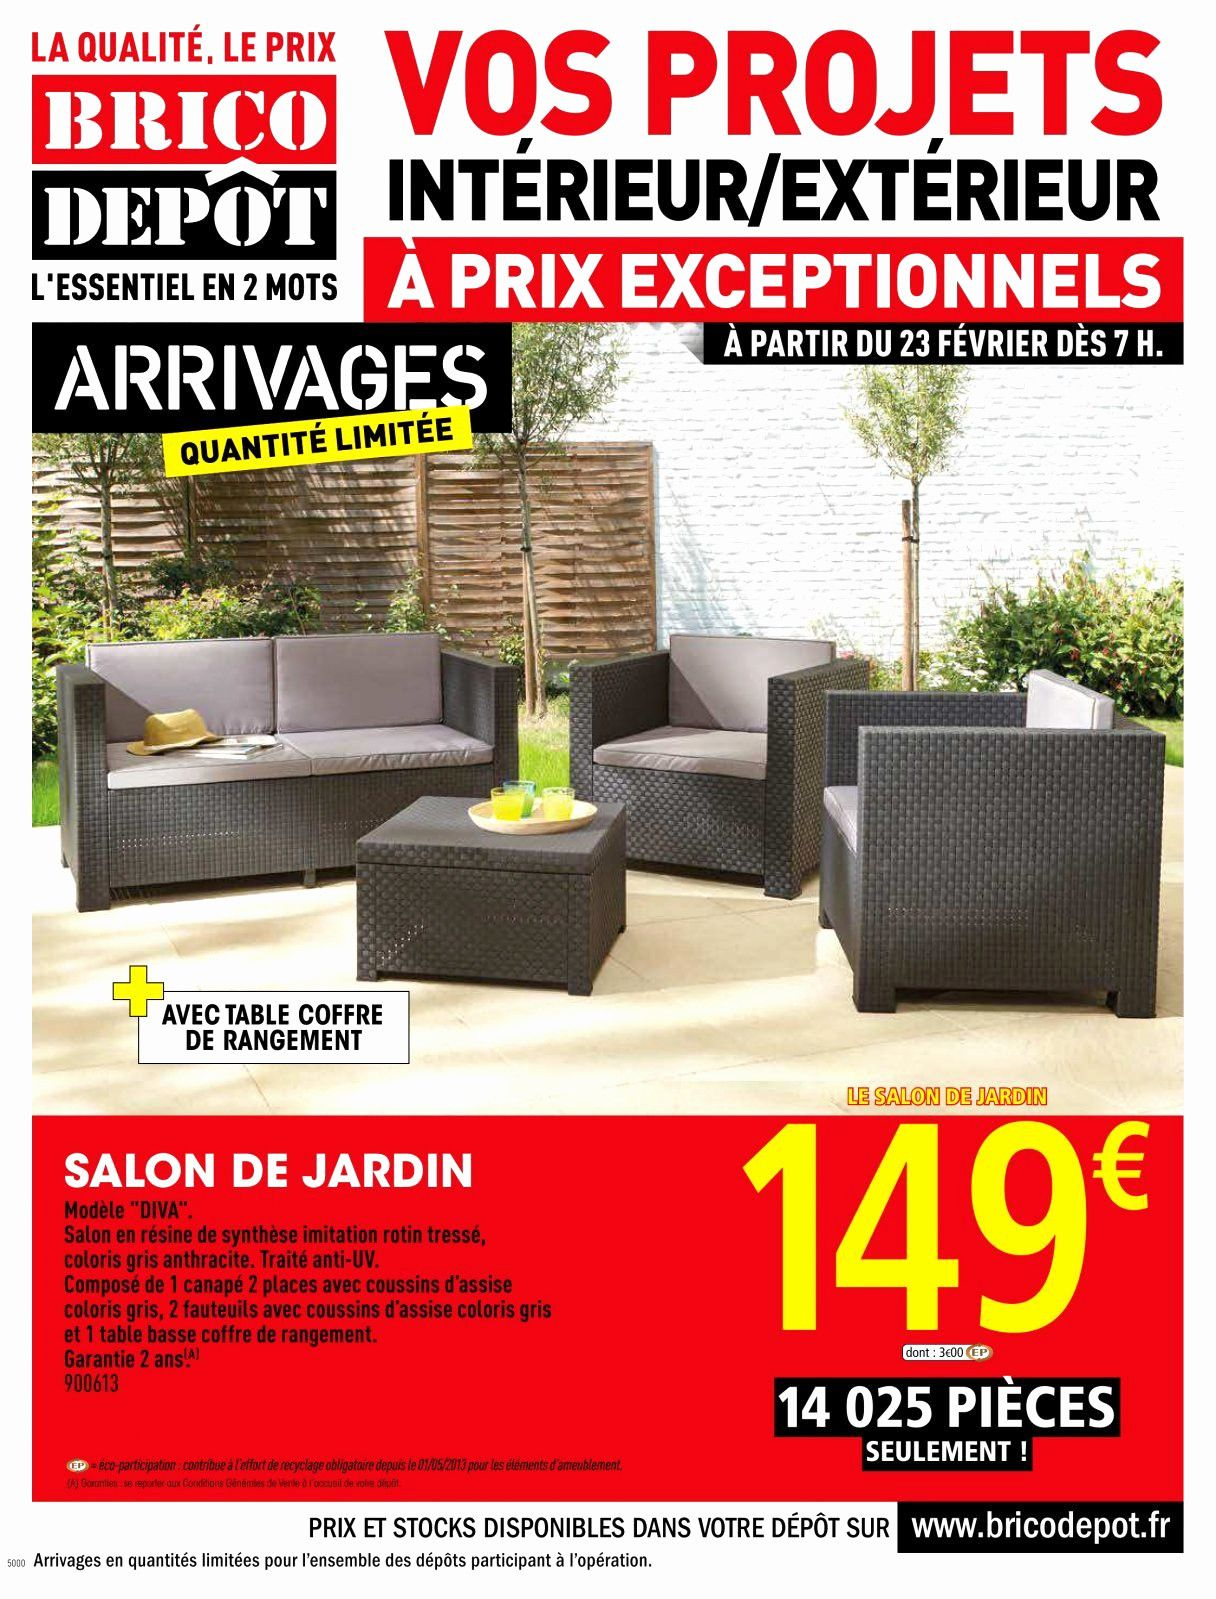 Unique Promo Salon De Jardin Brico Depot Outdoor Furnit Outdoor Furniture Furniture Design Living Room